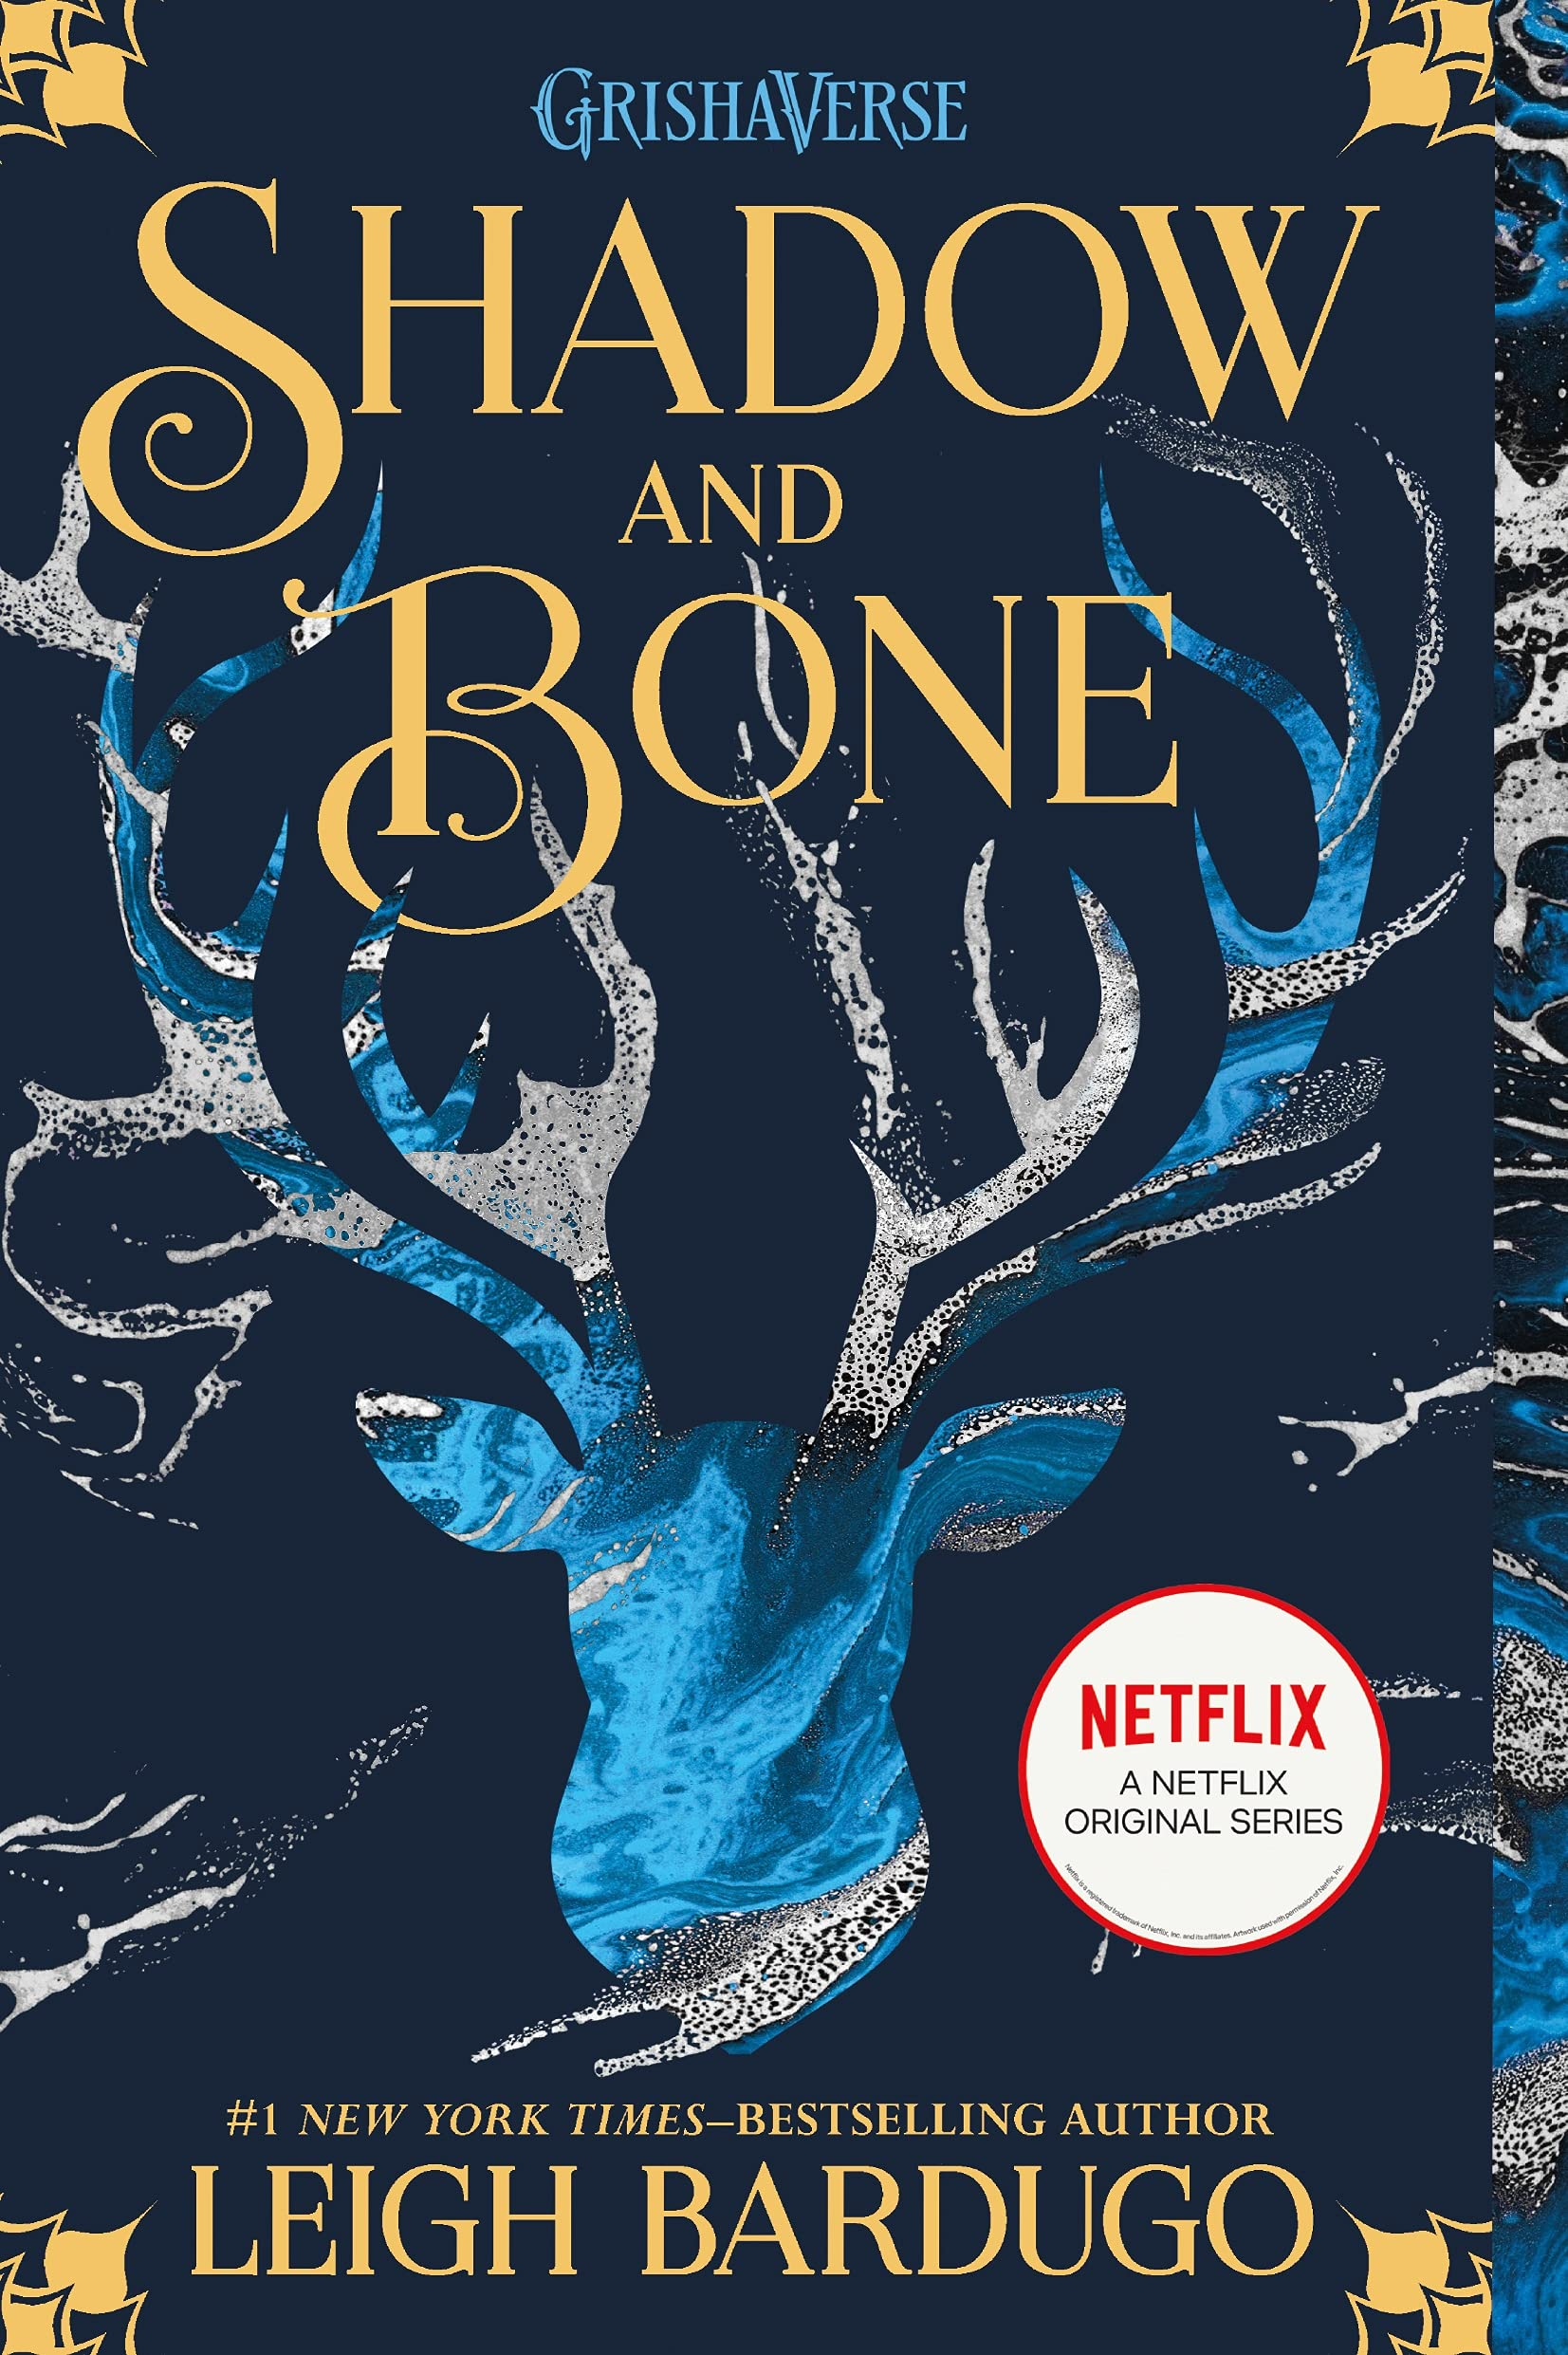 Shadow and Bone (Grisha Trilogy) [Assorted Cover image]: 1 (Shadow and Bone Trilogy): Amazon.co.uk: Bardugo, Leigh: 9781250027436: Books